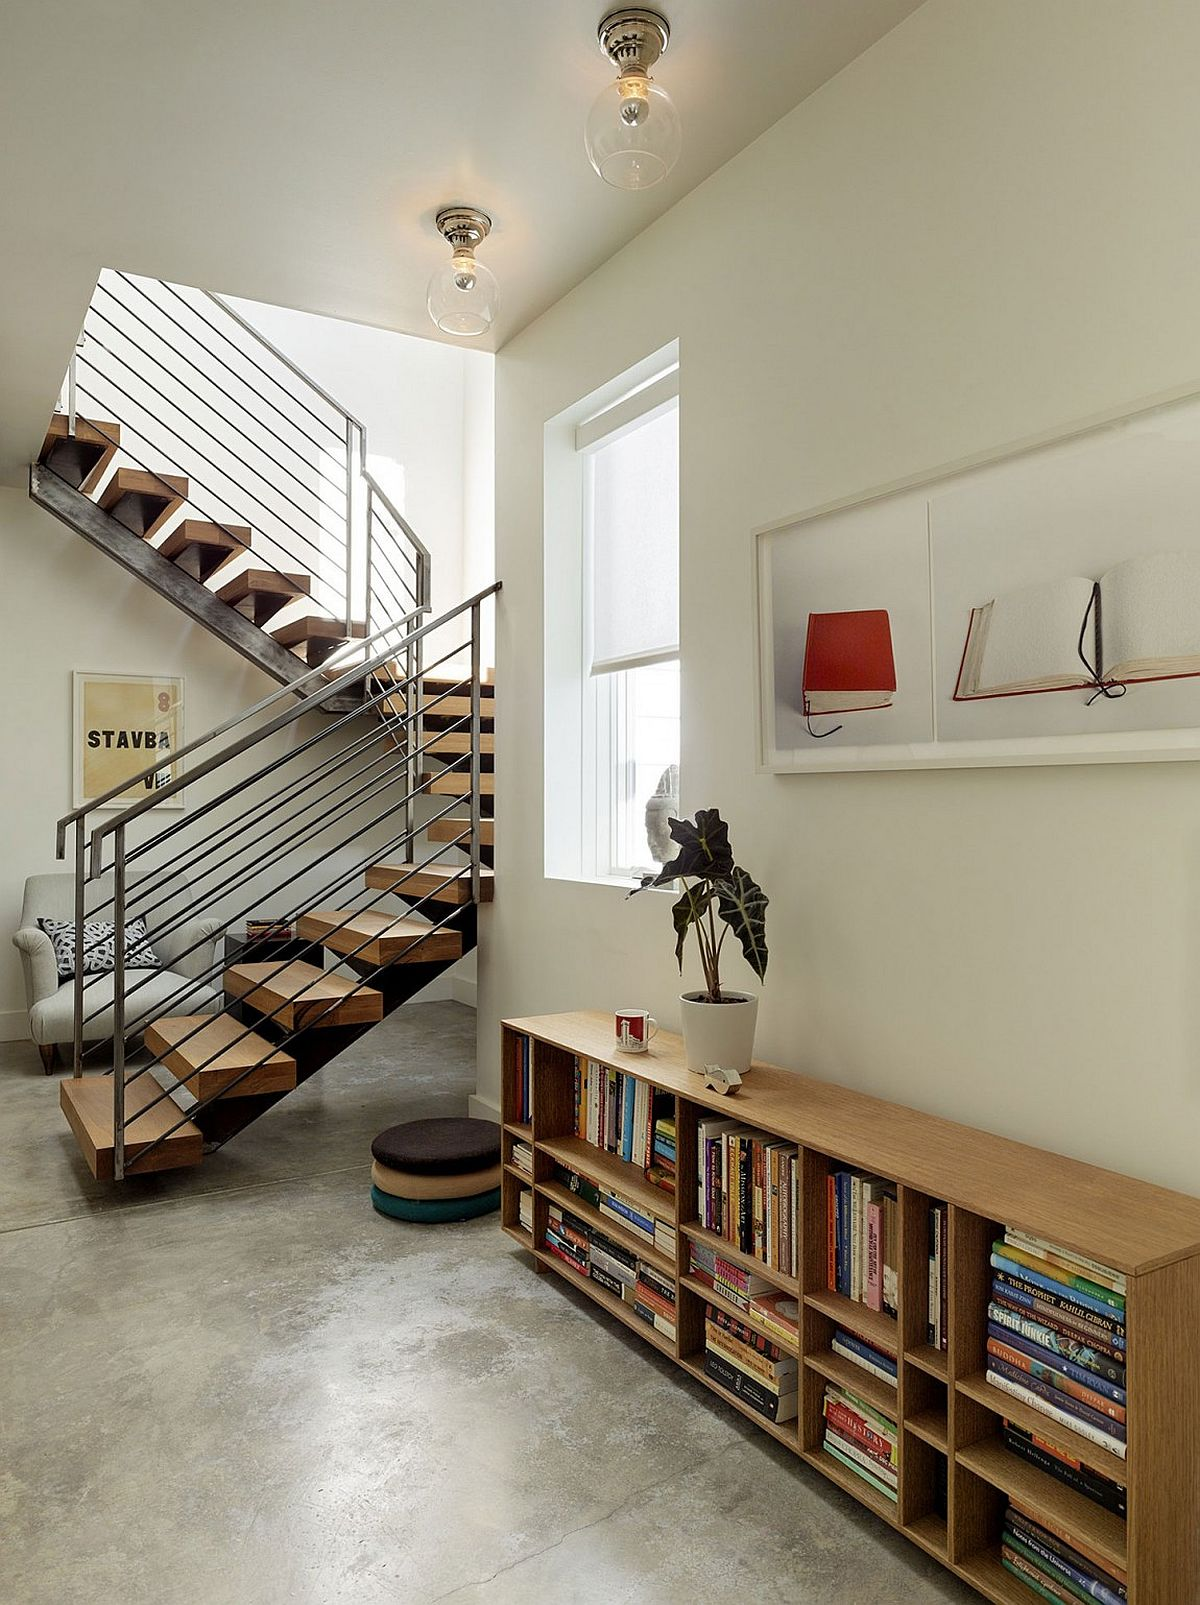 Sculptural metal and wood staircase design